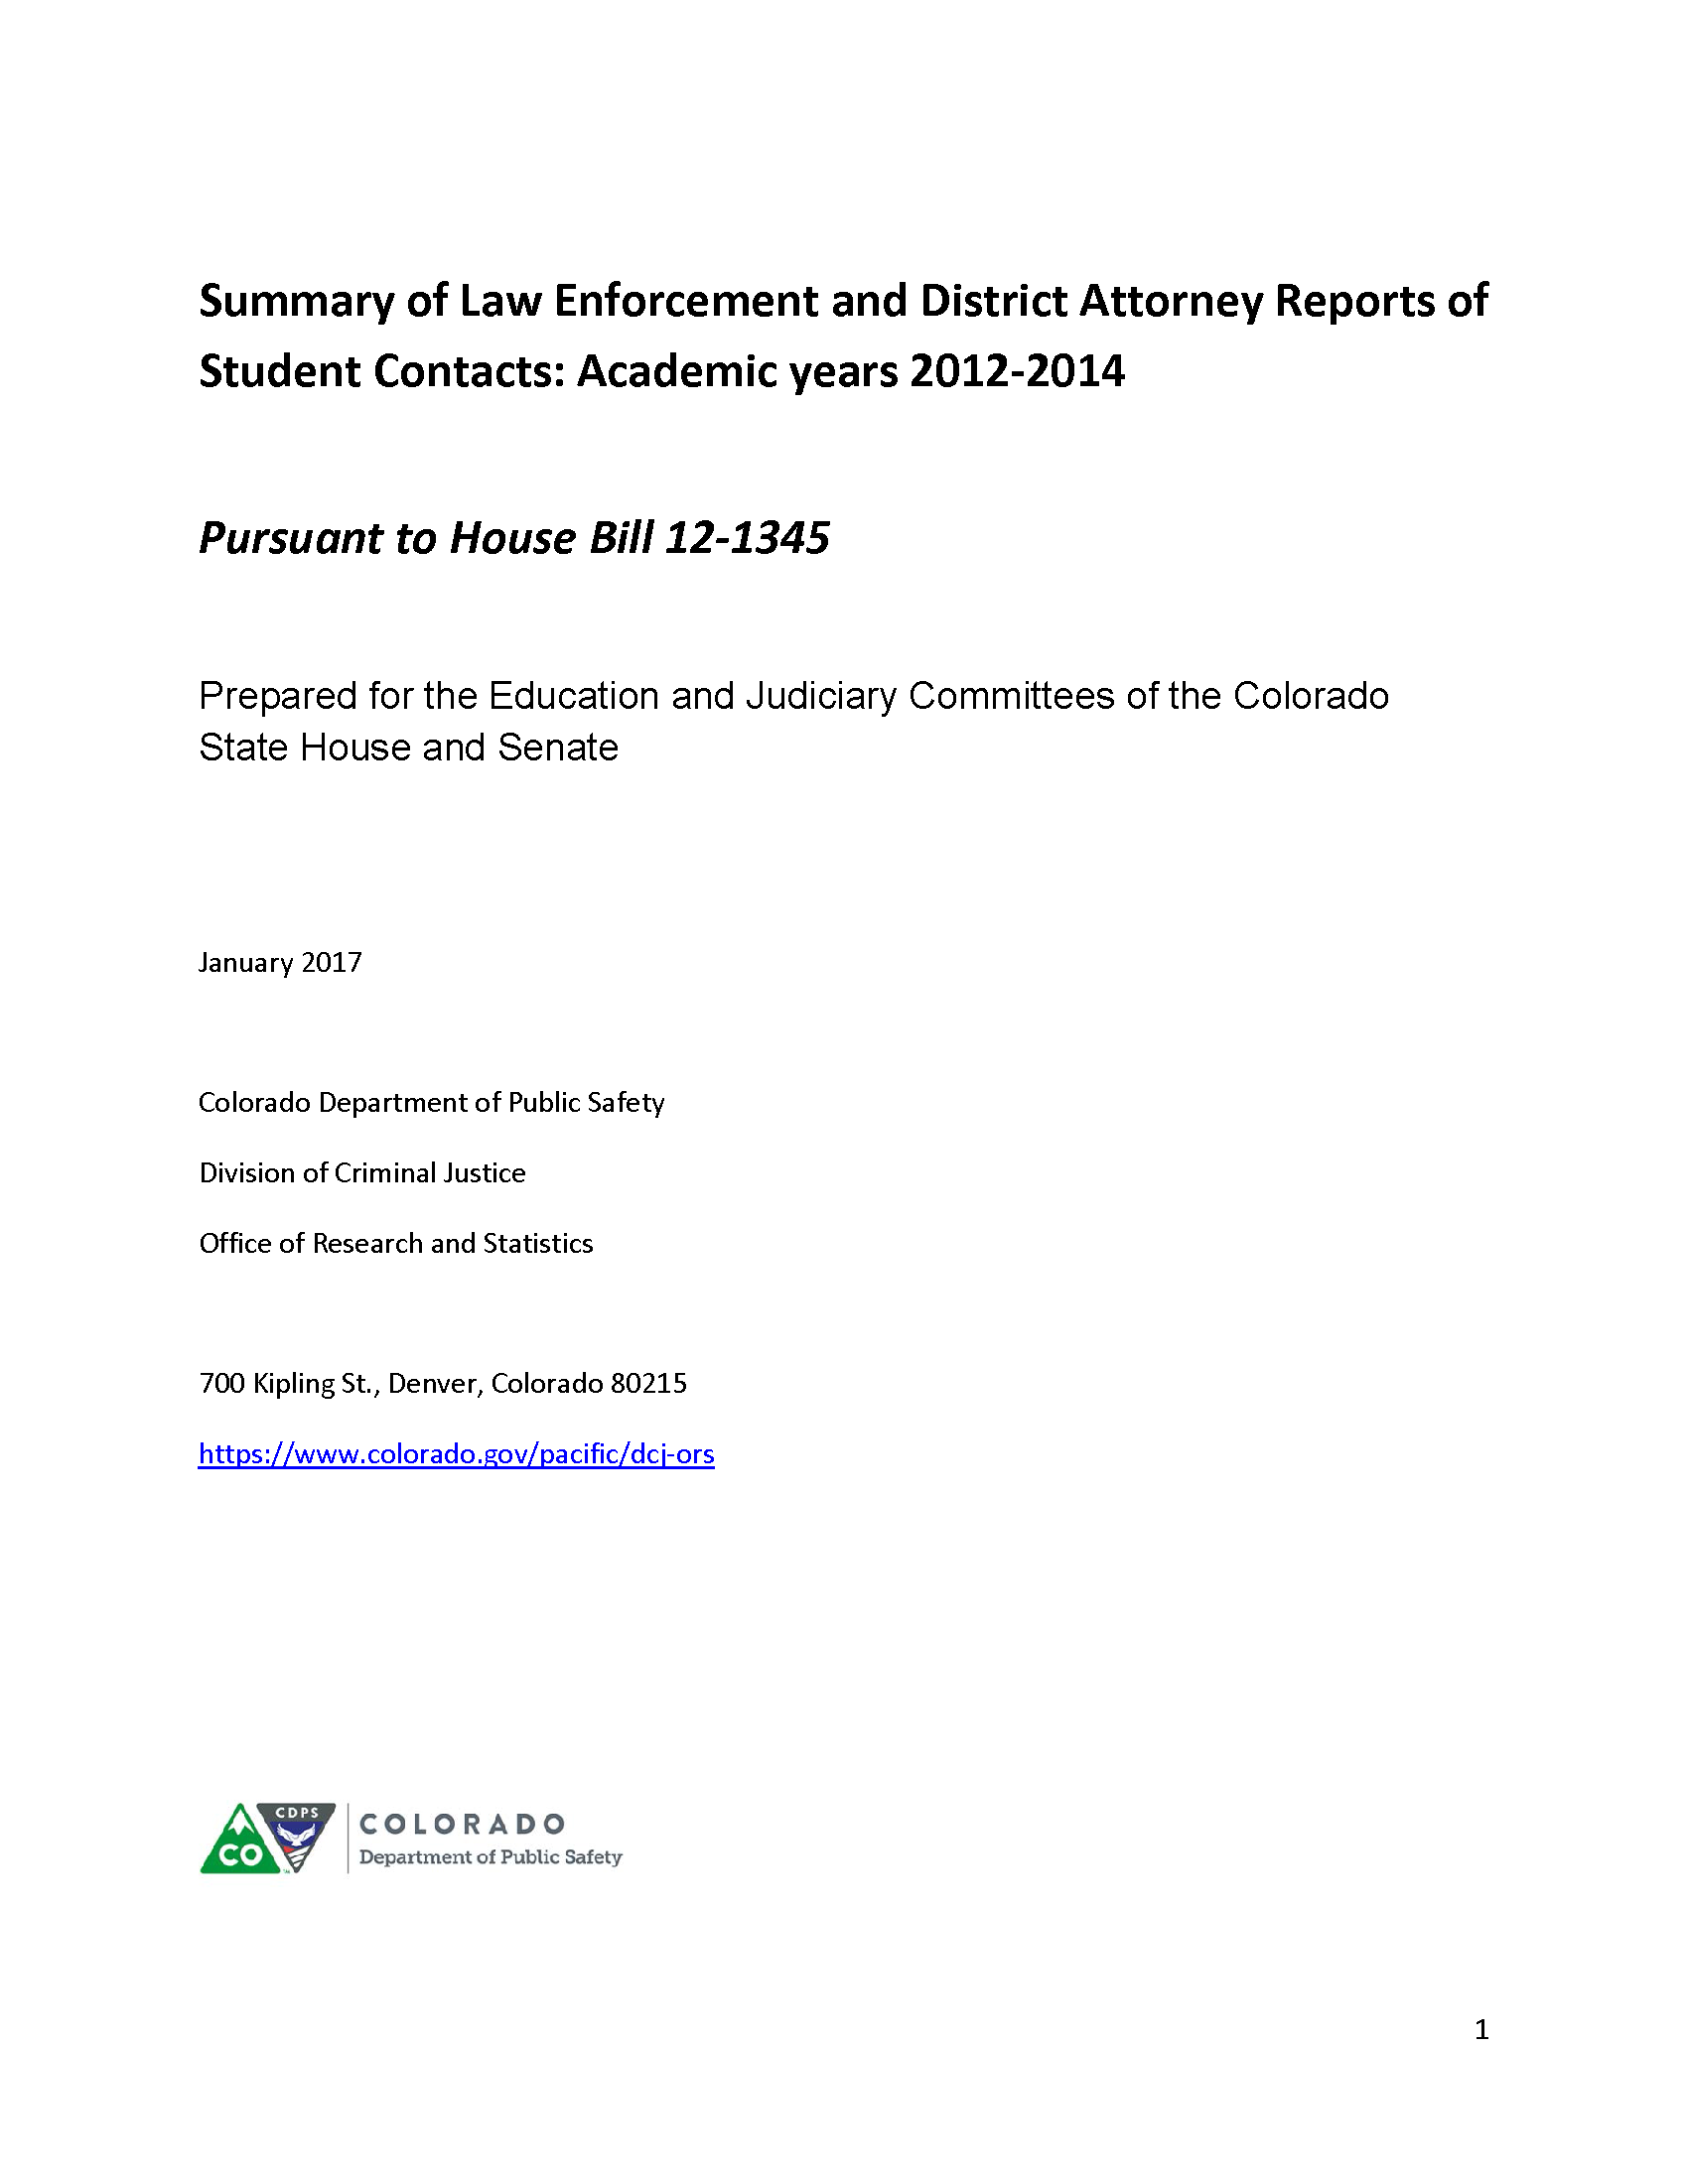 Summary of Law Enforcement and District Attorney Reports of Student Contacts (January 2017)